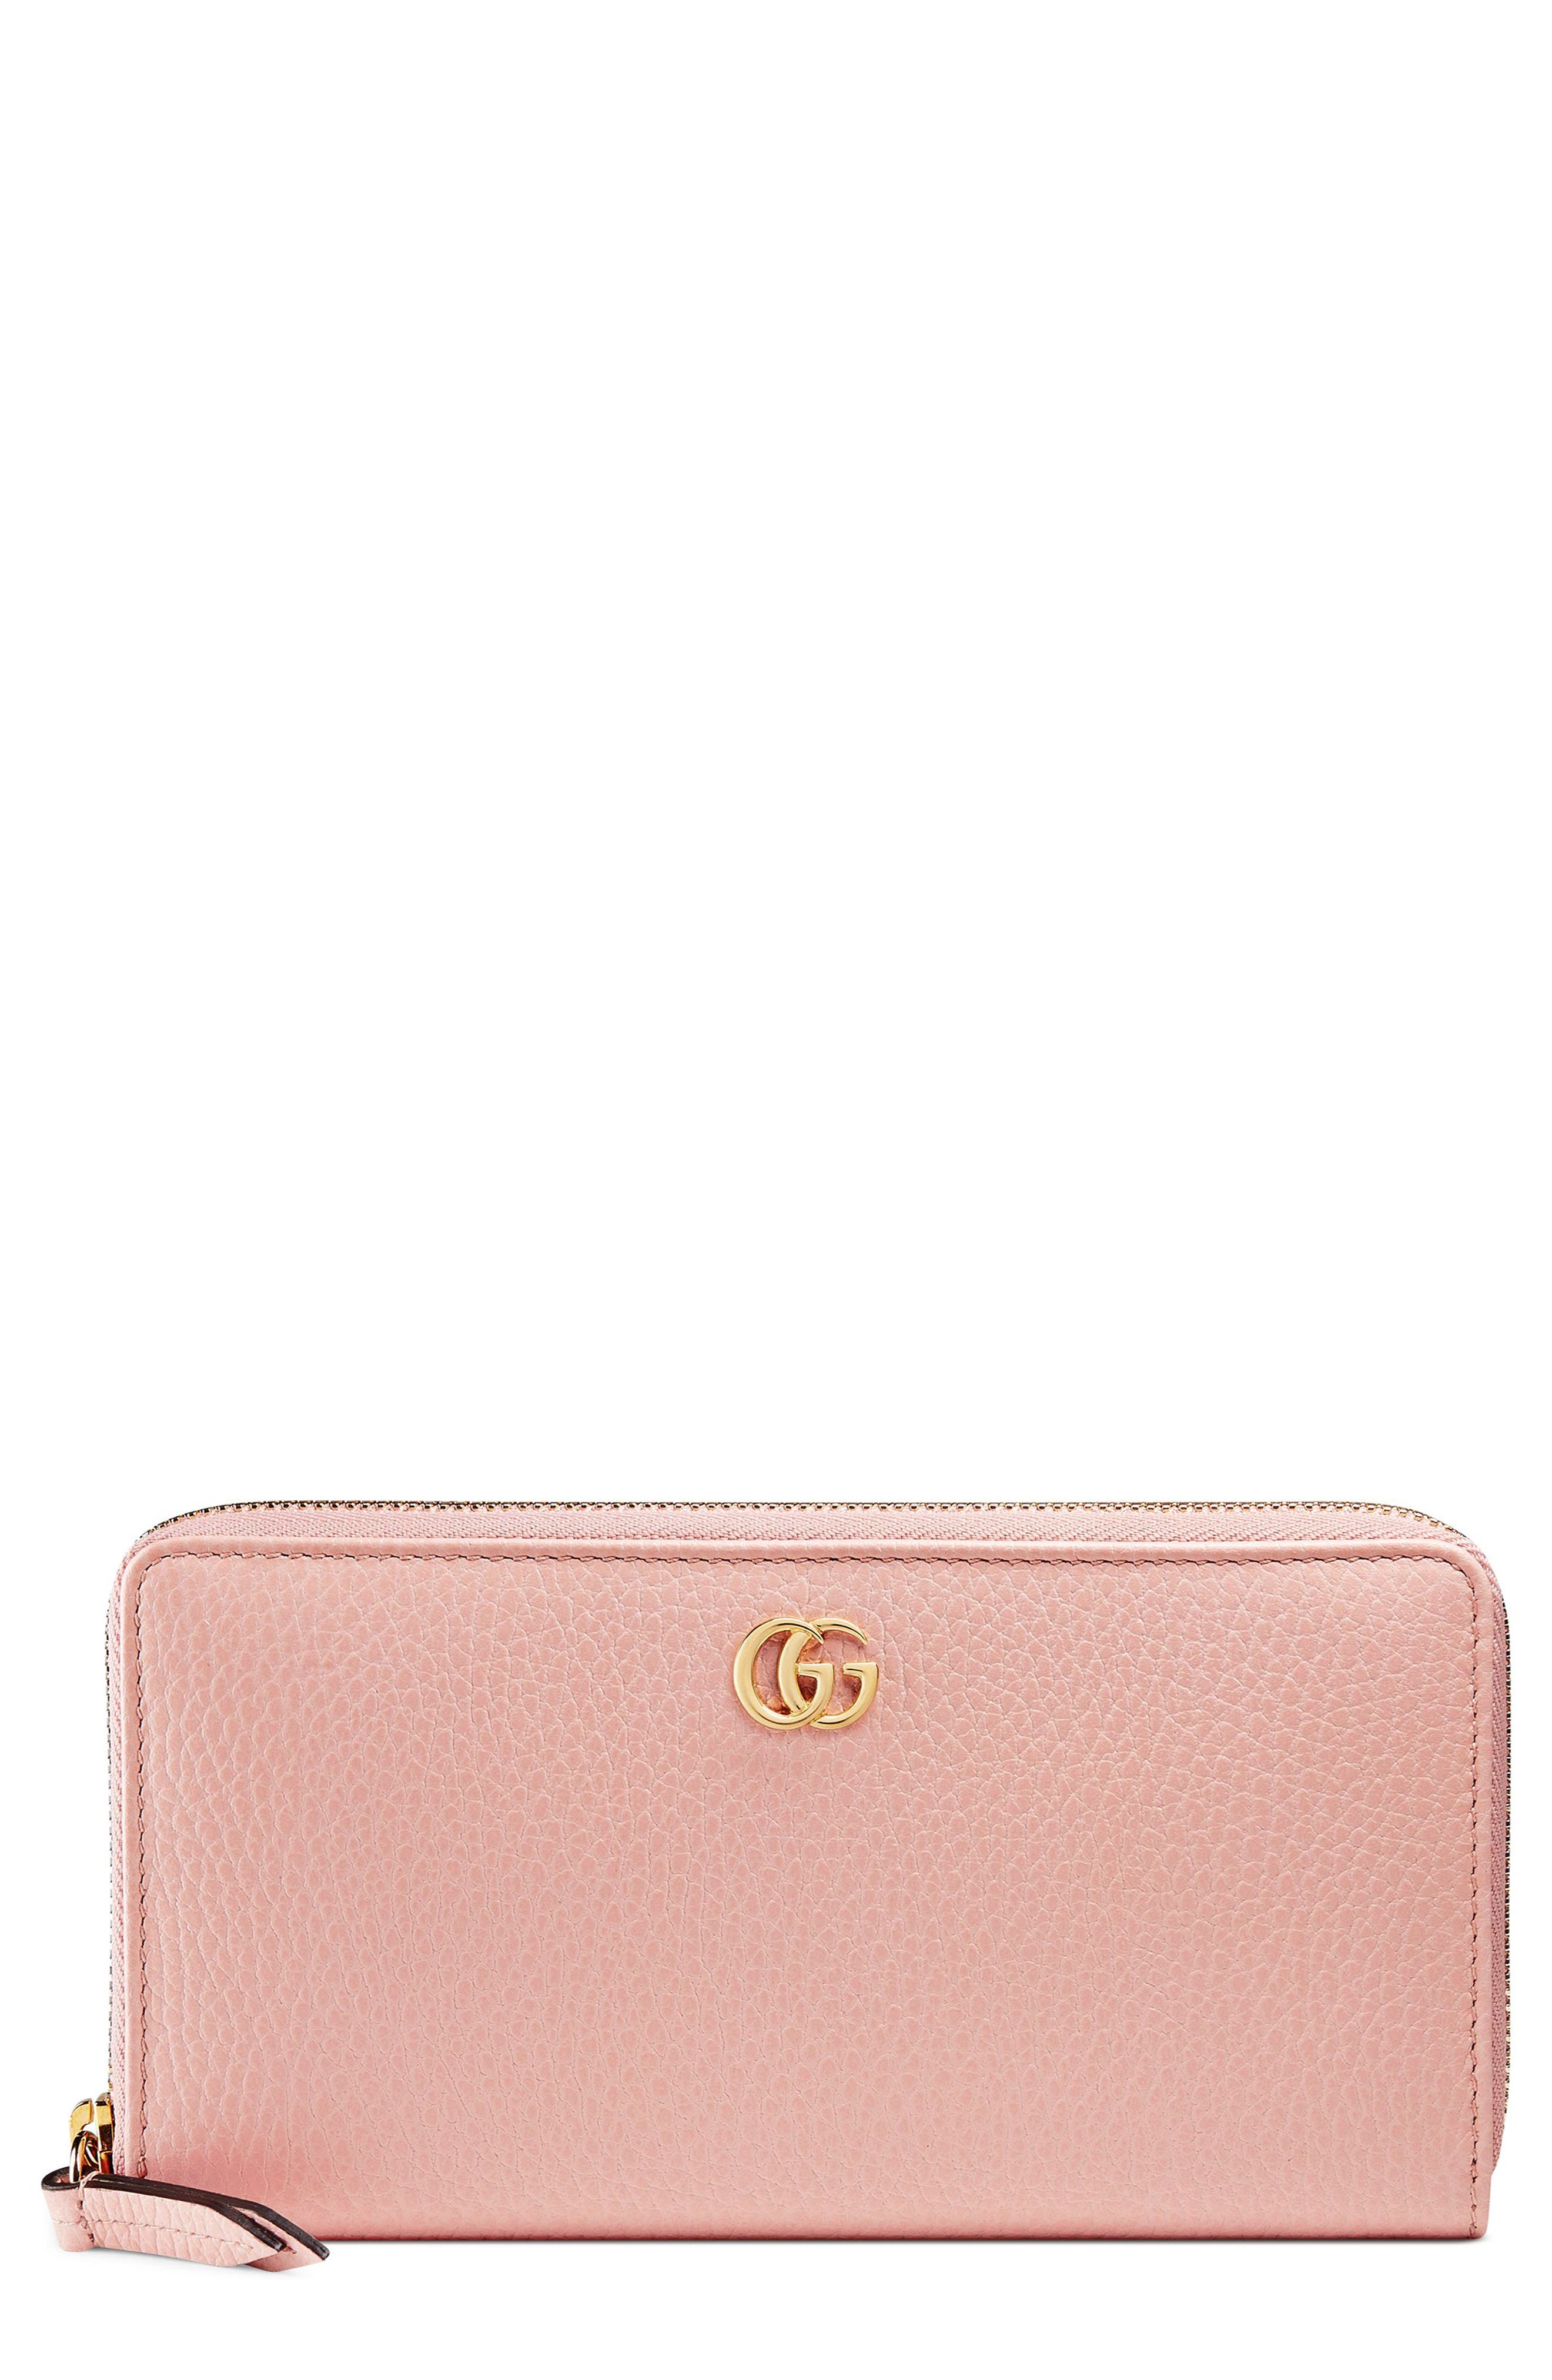 Petite Marmont Leather Zip Around Wallet,                         Main,                         color, 650